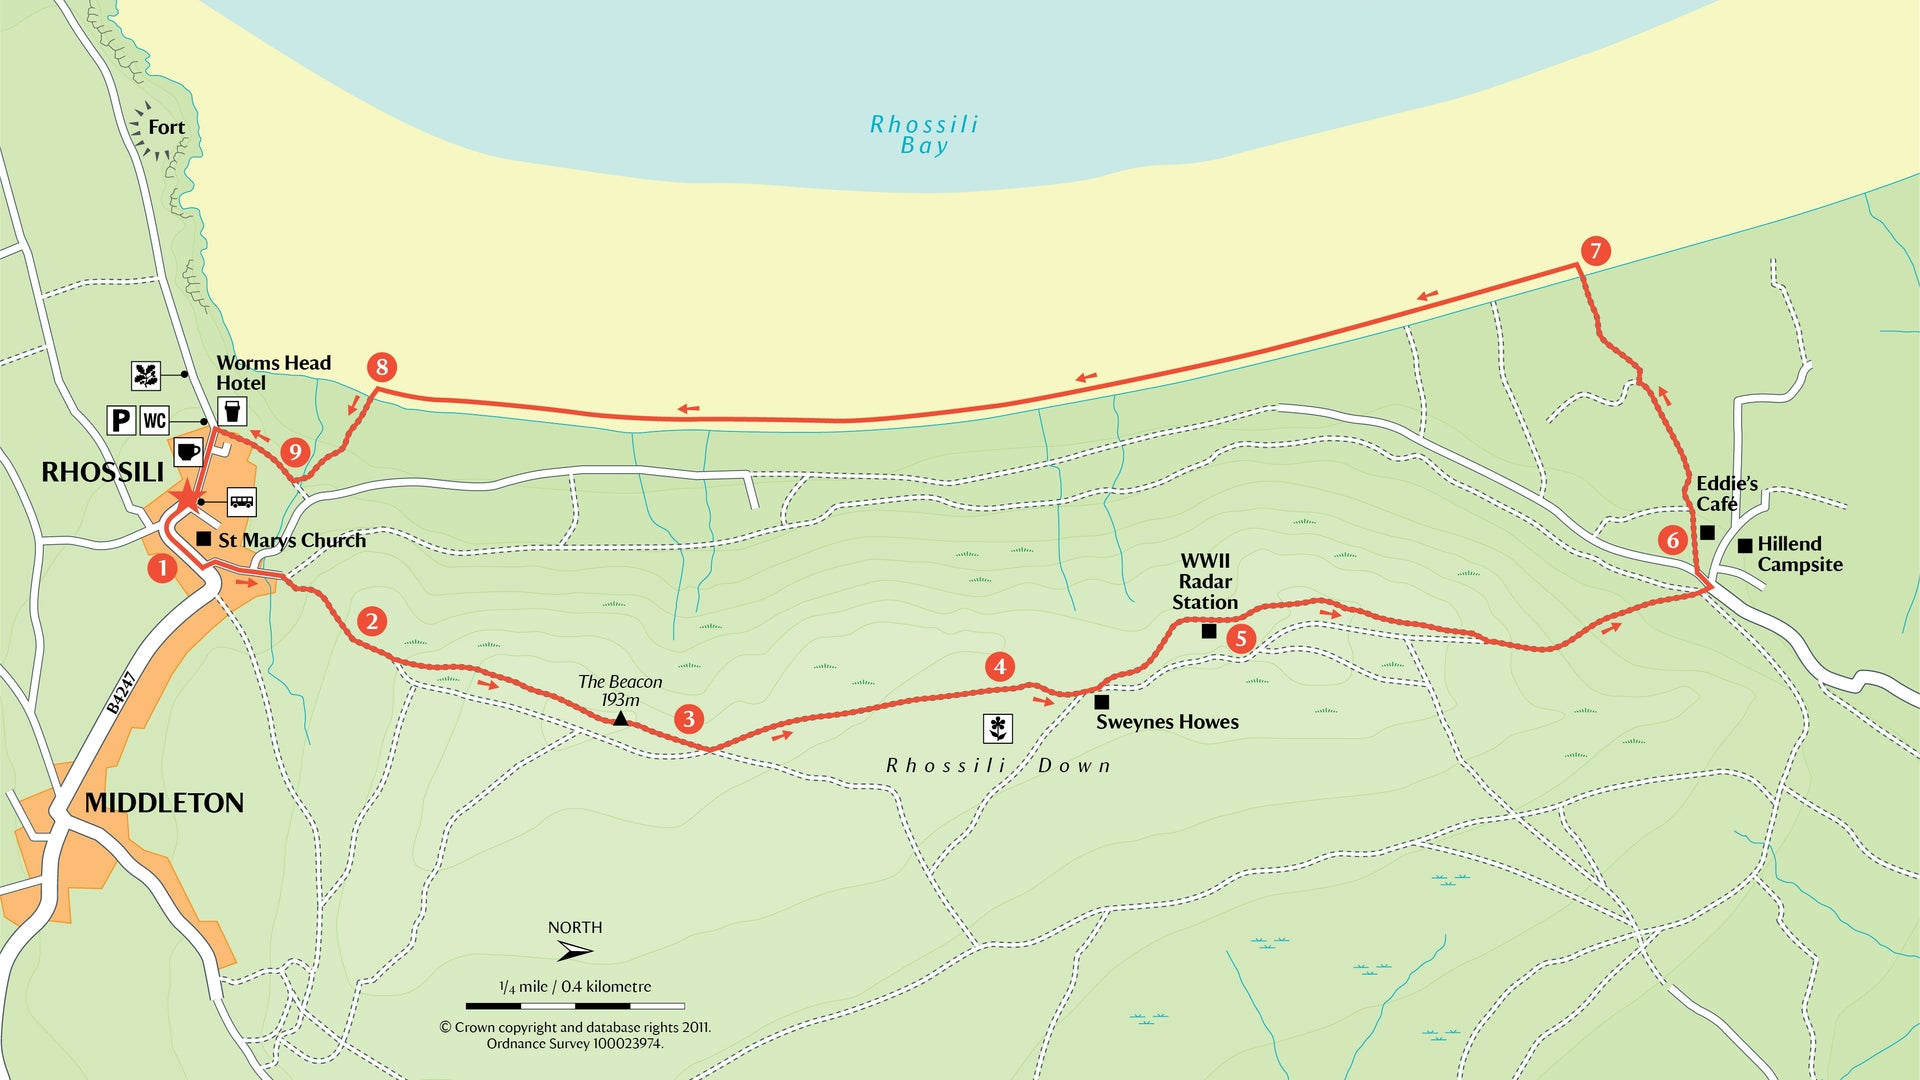 Rhossili Down Walking Trail from Llangennith - Gower Peninsula Hiking Route Map and Guide